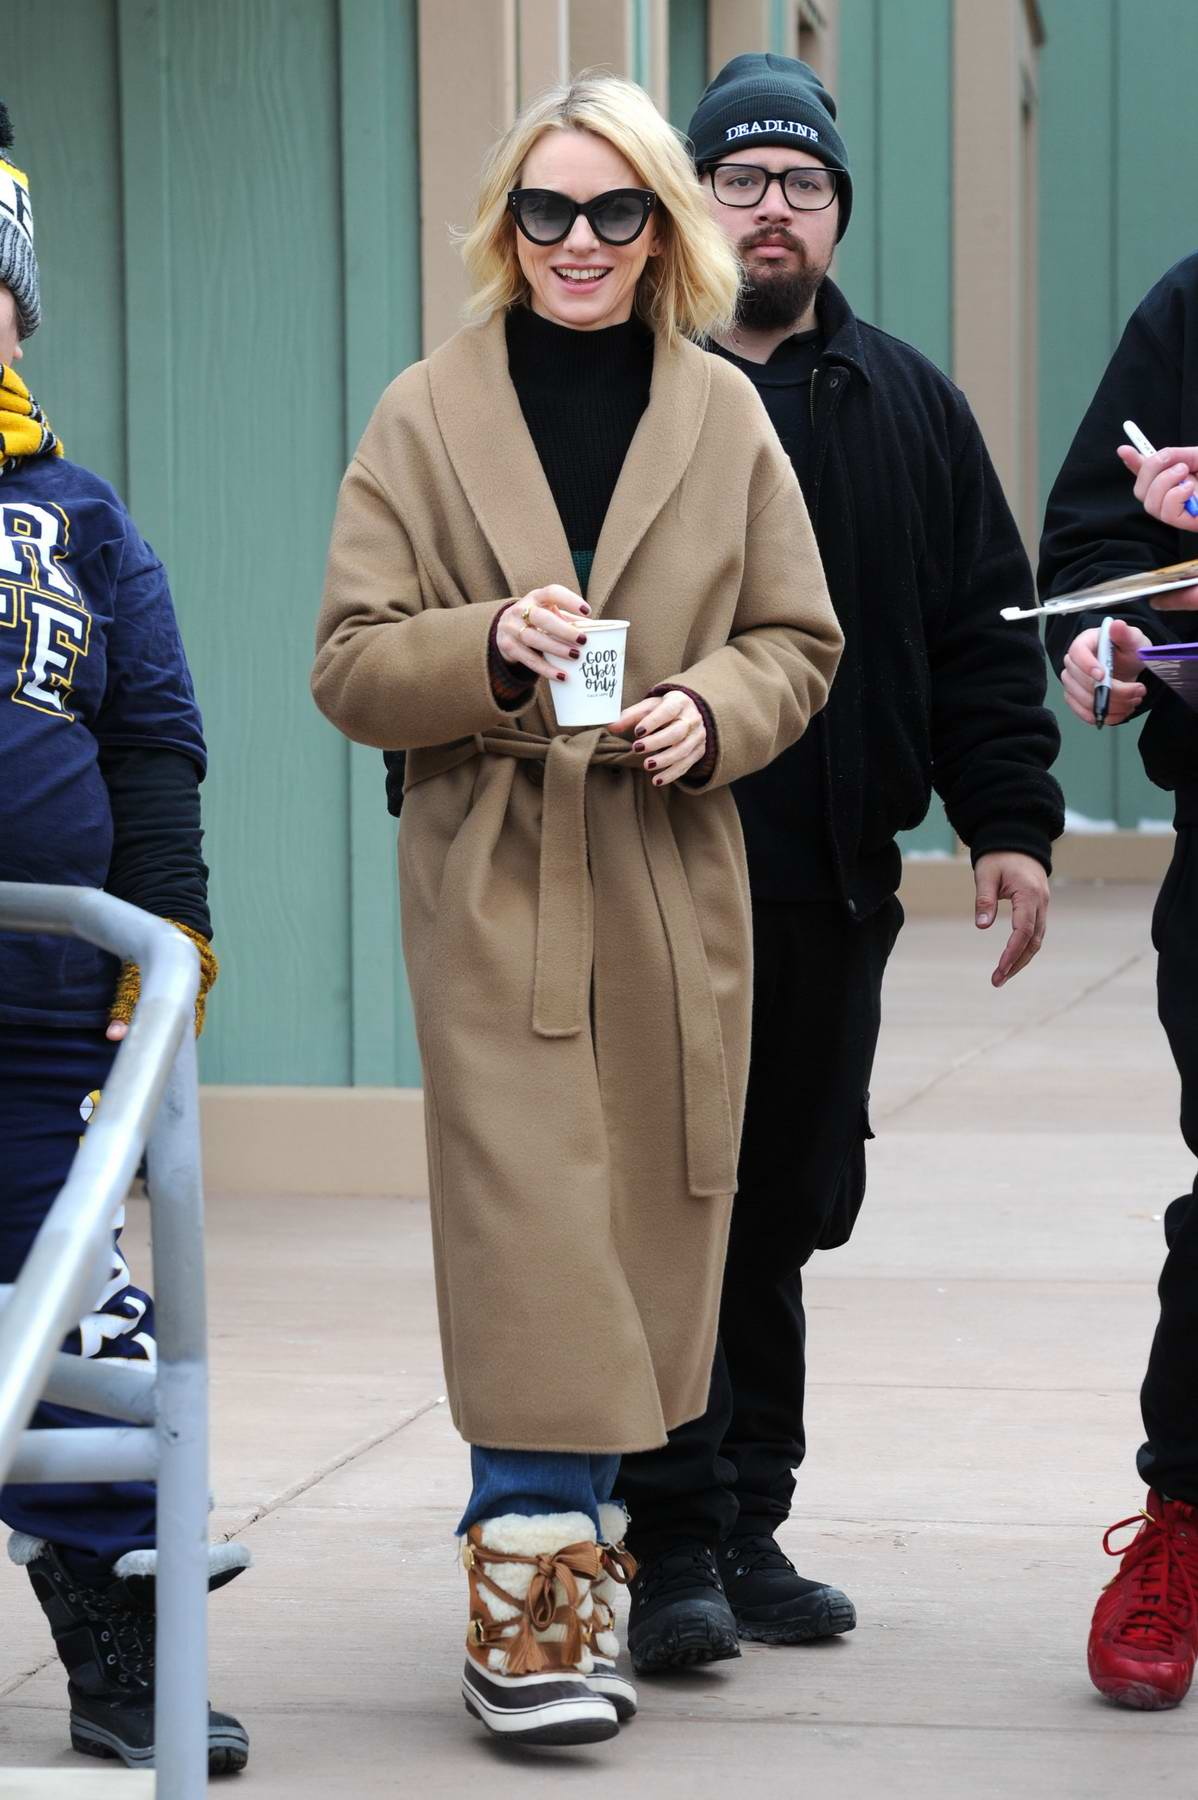 Naomi Watts enjoys a hot coffee while promoting her film 'Ophelia' during the Sundance Film Festival in Park City, Utah